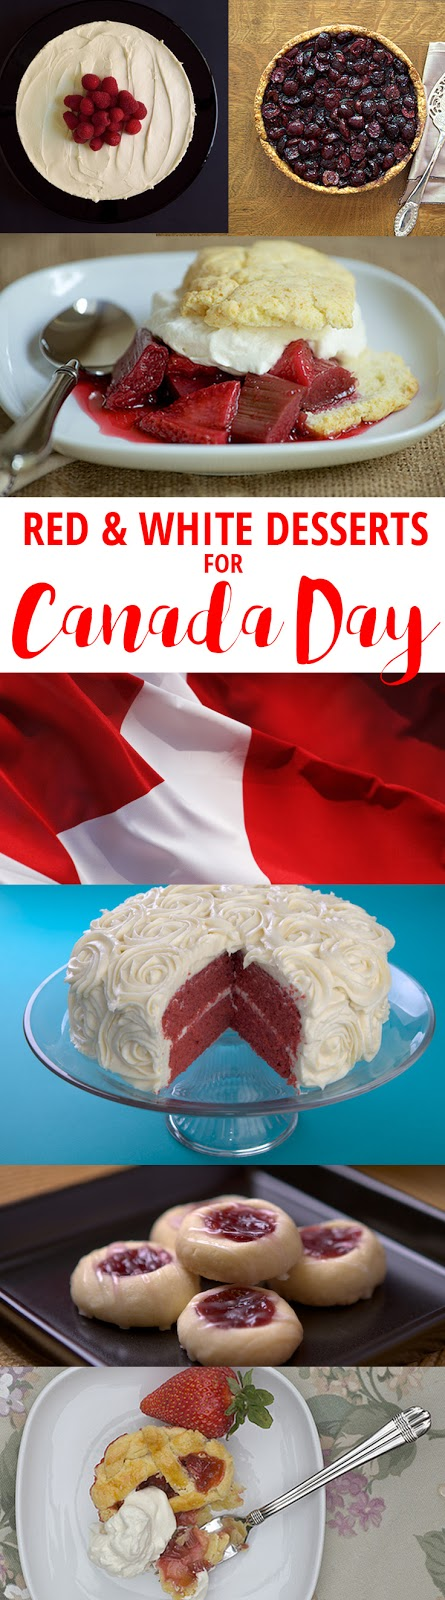 Red & White Recipes for Canada Day